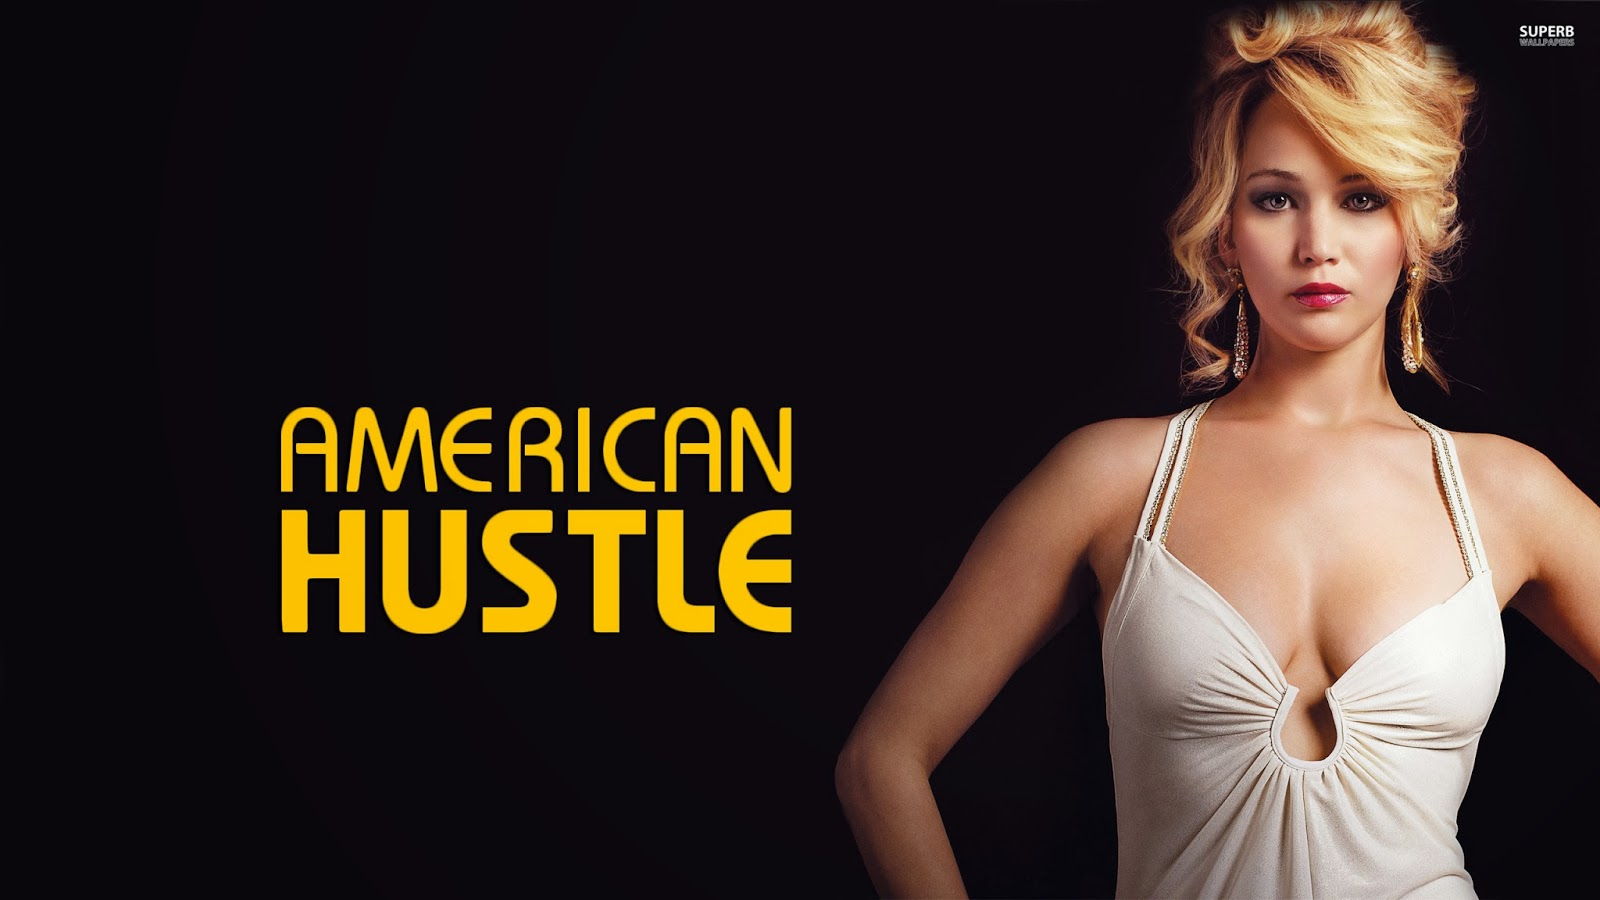 American Hustle Full movie free Download  Full Movie Free Download